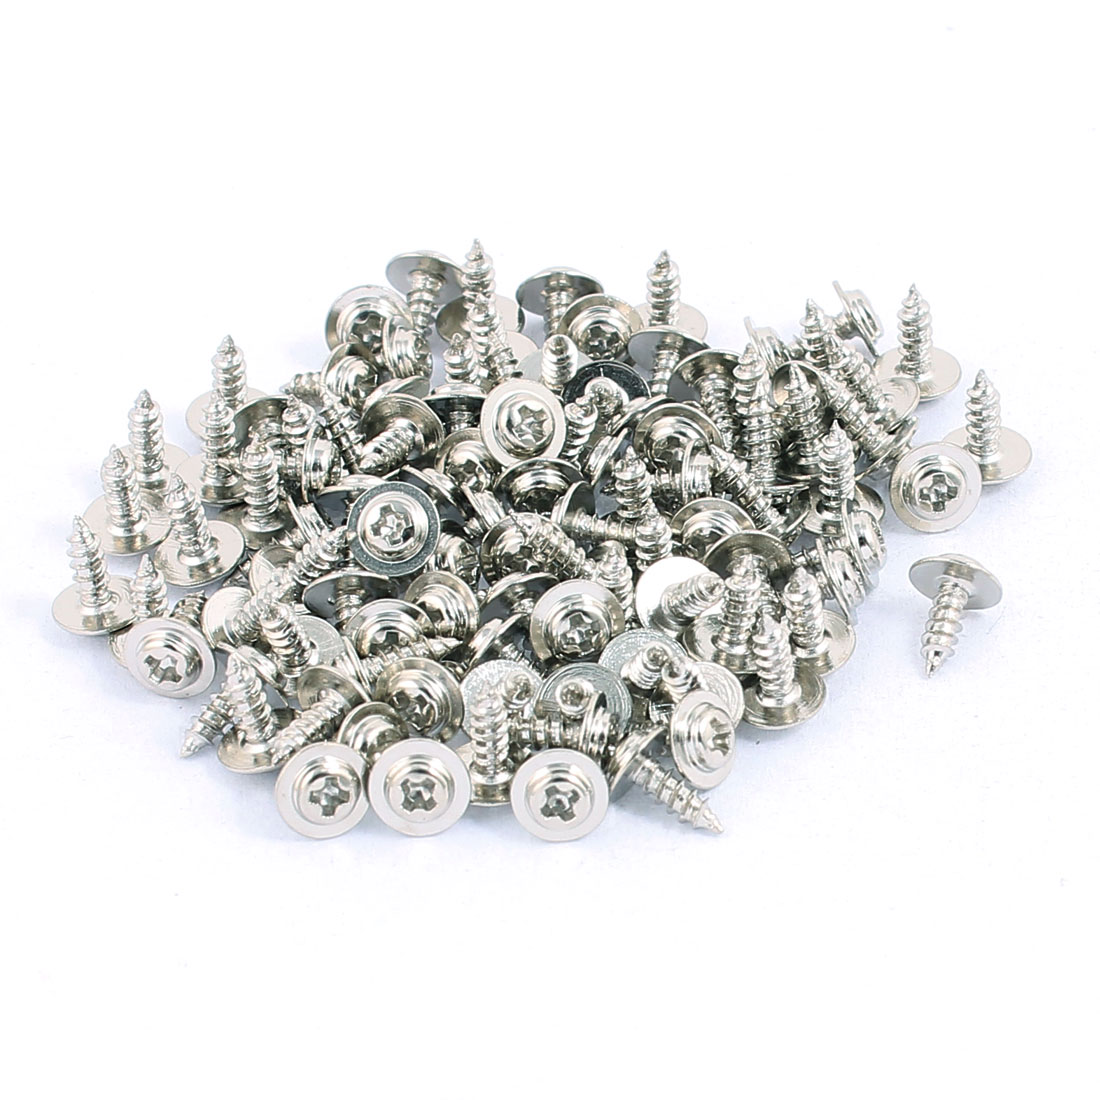 6 x 2mm 100 xStainless Steel Round Phillips Head Self Tapping Screw With Washer